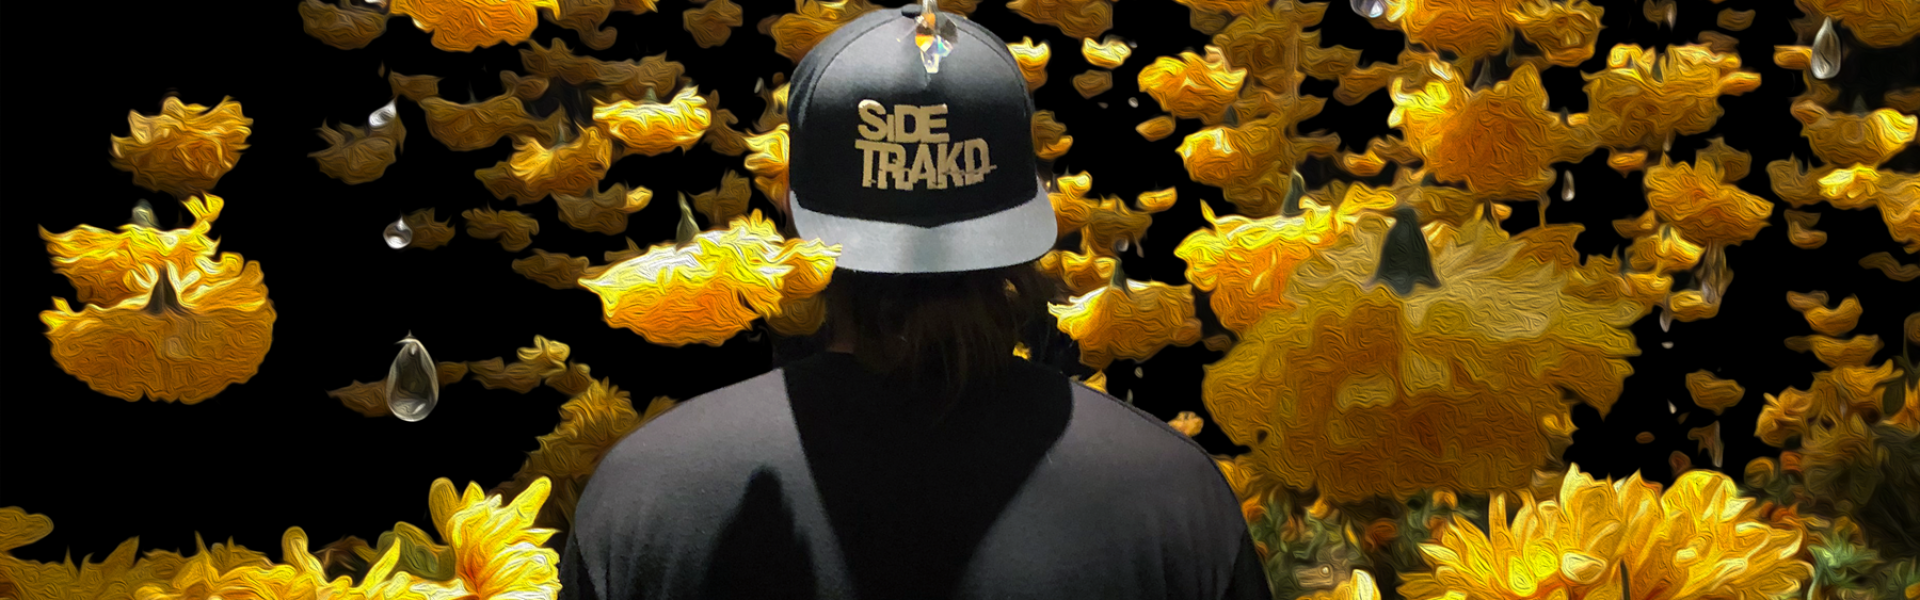 http://sidetrakdmusic.com/wp-content/uploads/2017/05/SIDE-TRAKD_-flowers_small.png